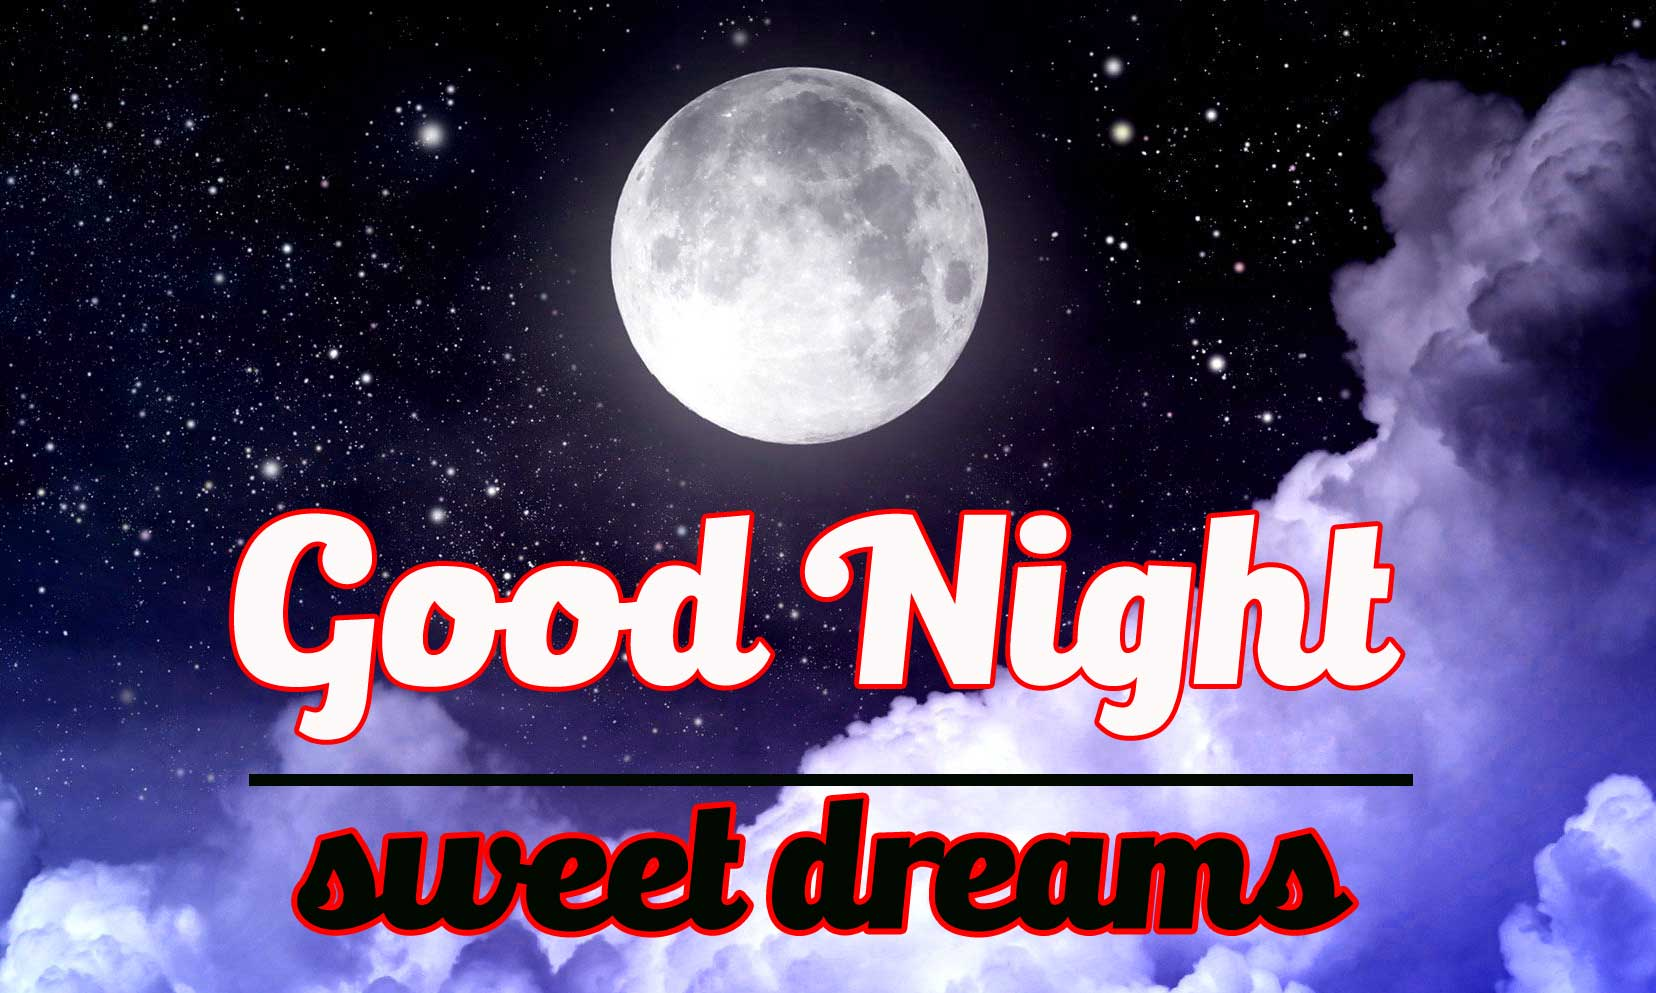 Good Night Wallpaper 7 1